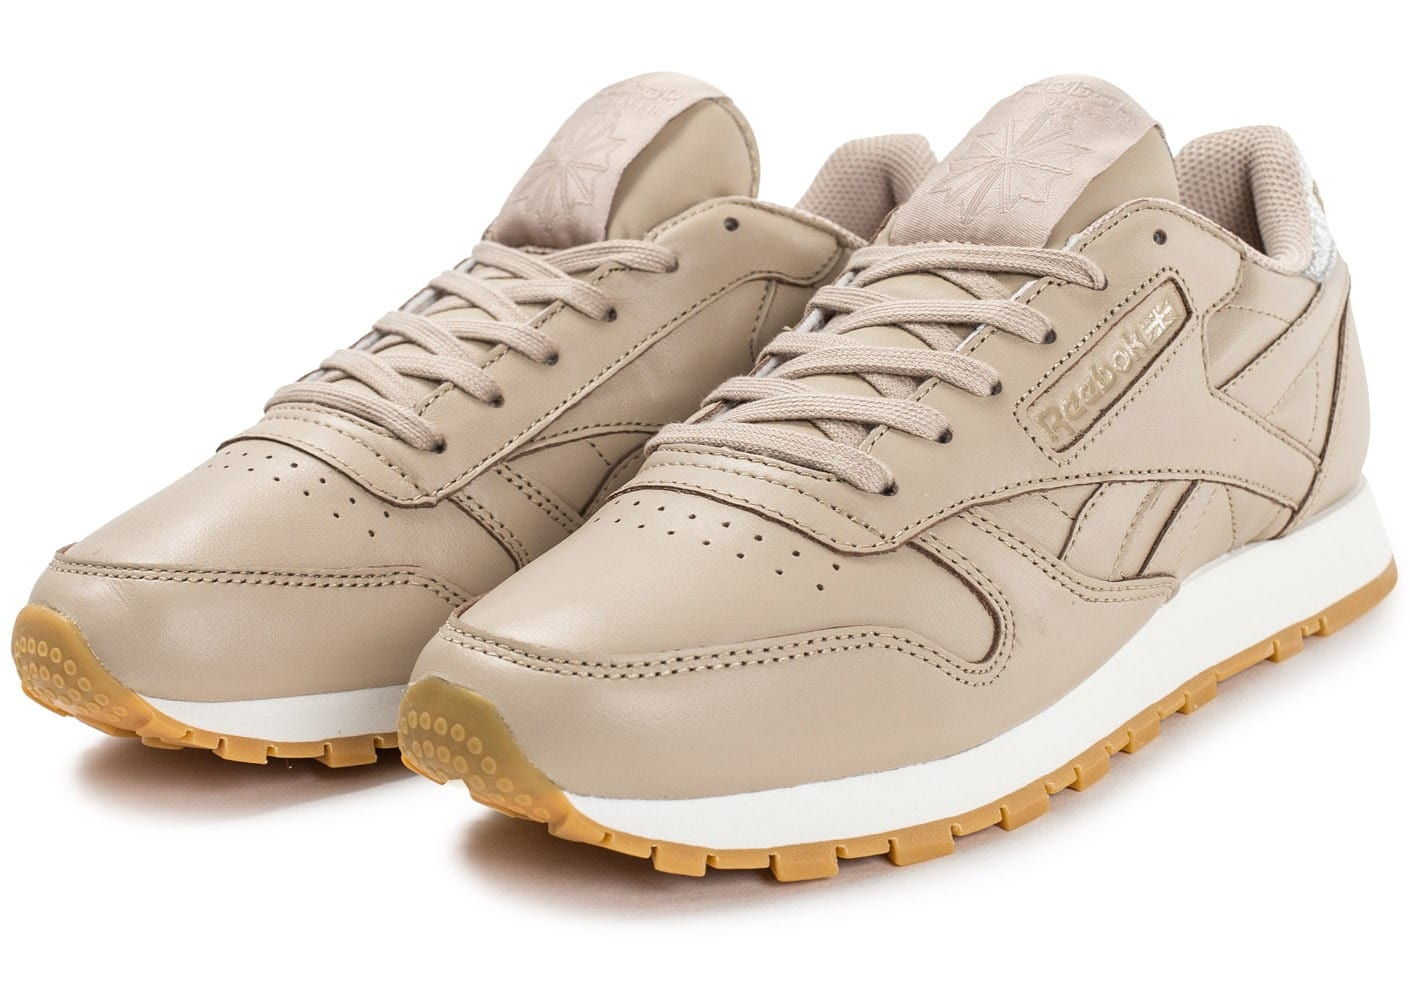 Bons Leather Reebok Gum Chaussures Classic Plans Diamond Beige pYOqf8Yr